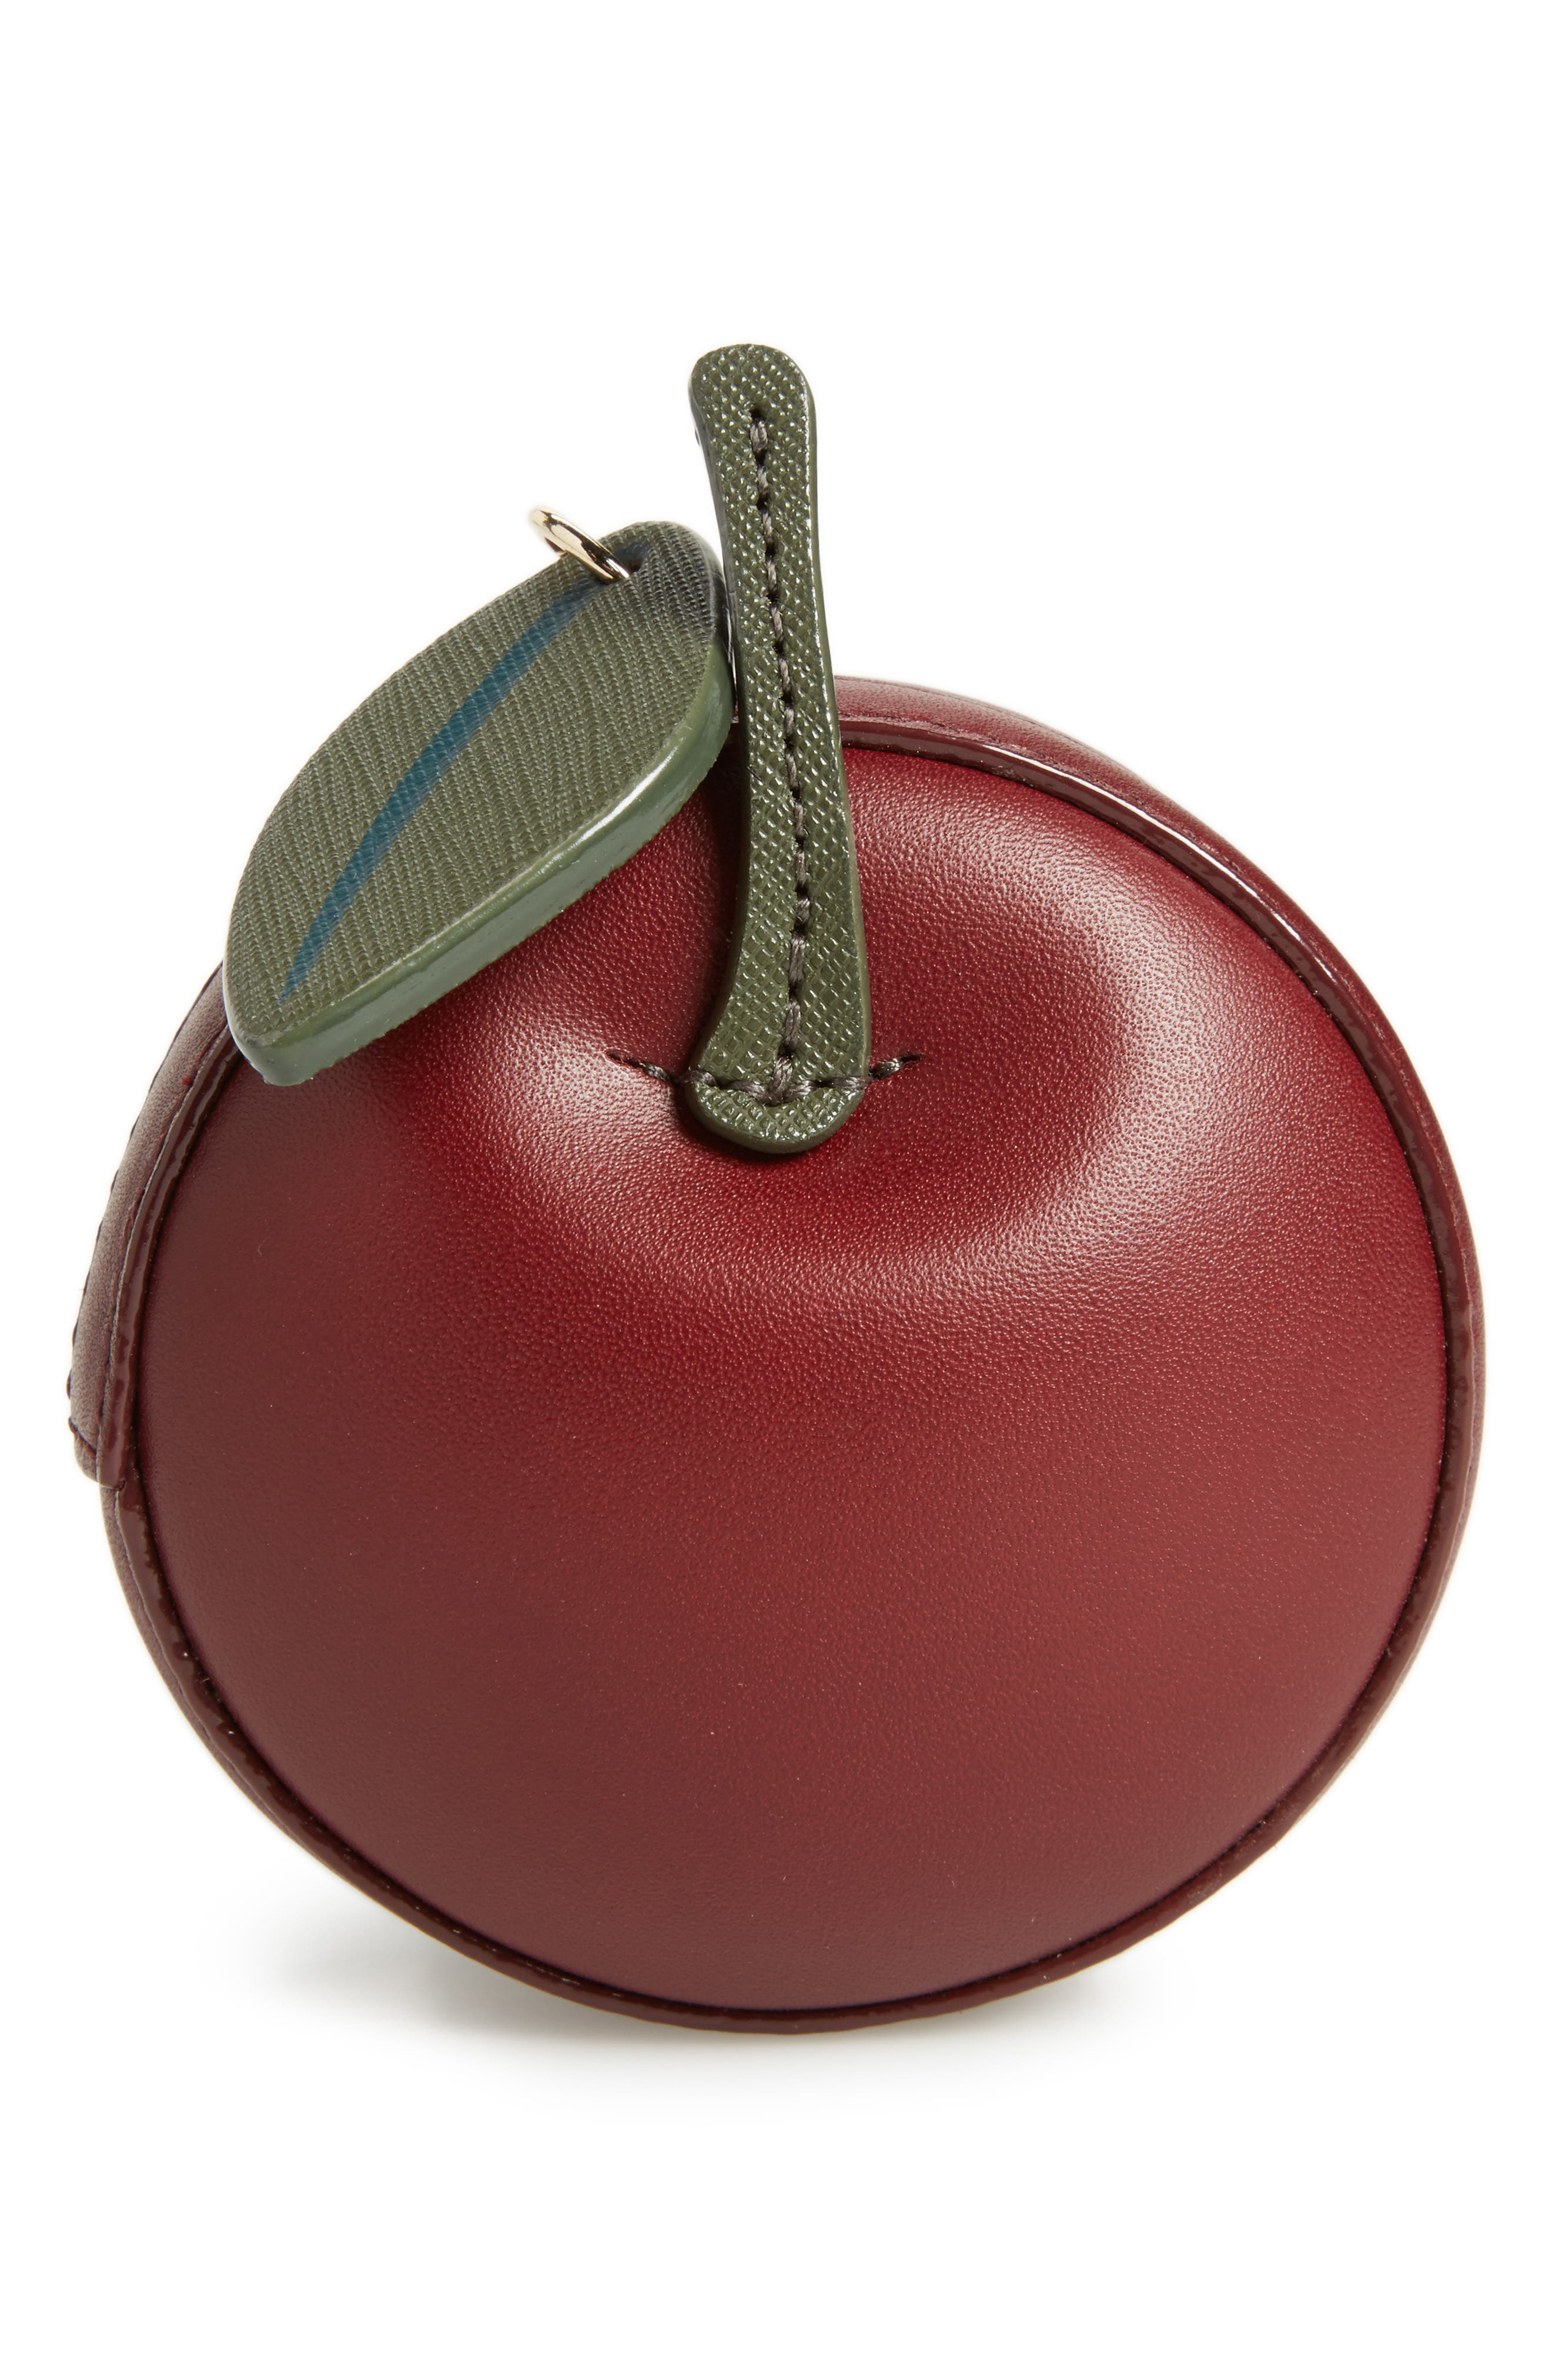 kate spade new york ma cherie - 3D cherry leather coin pouch